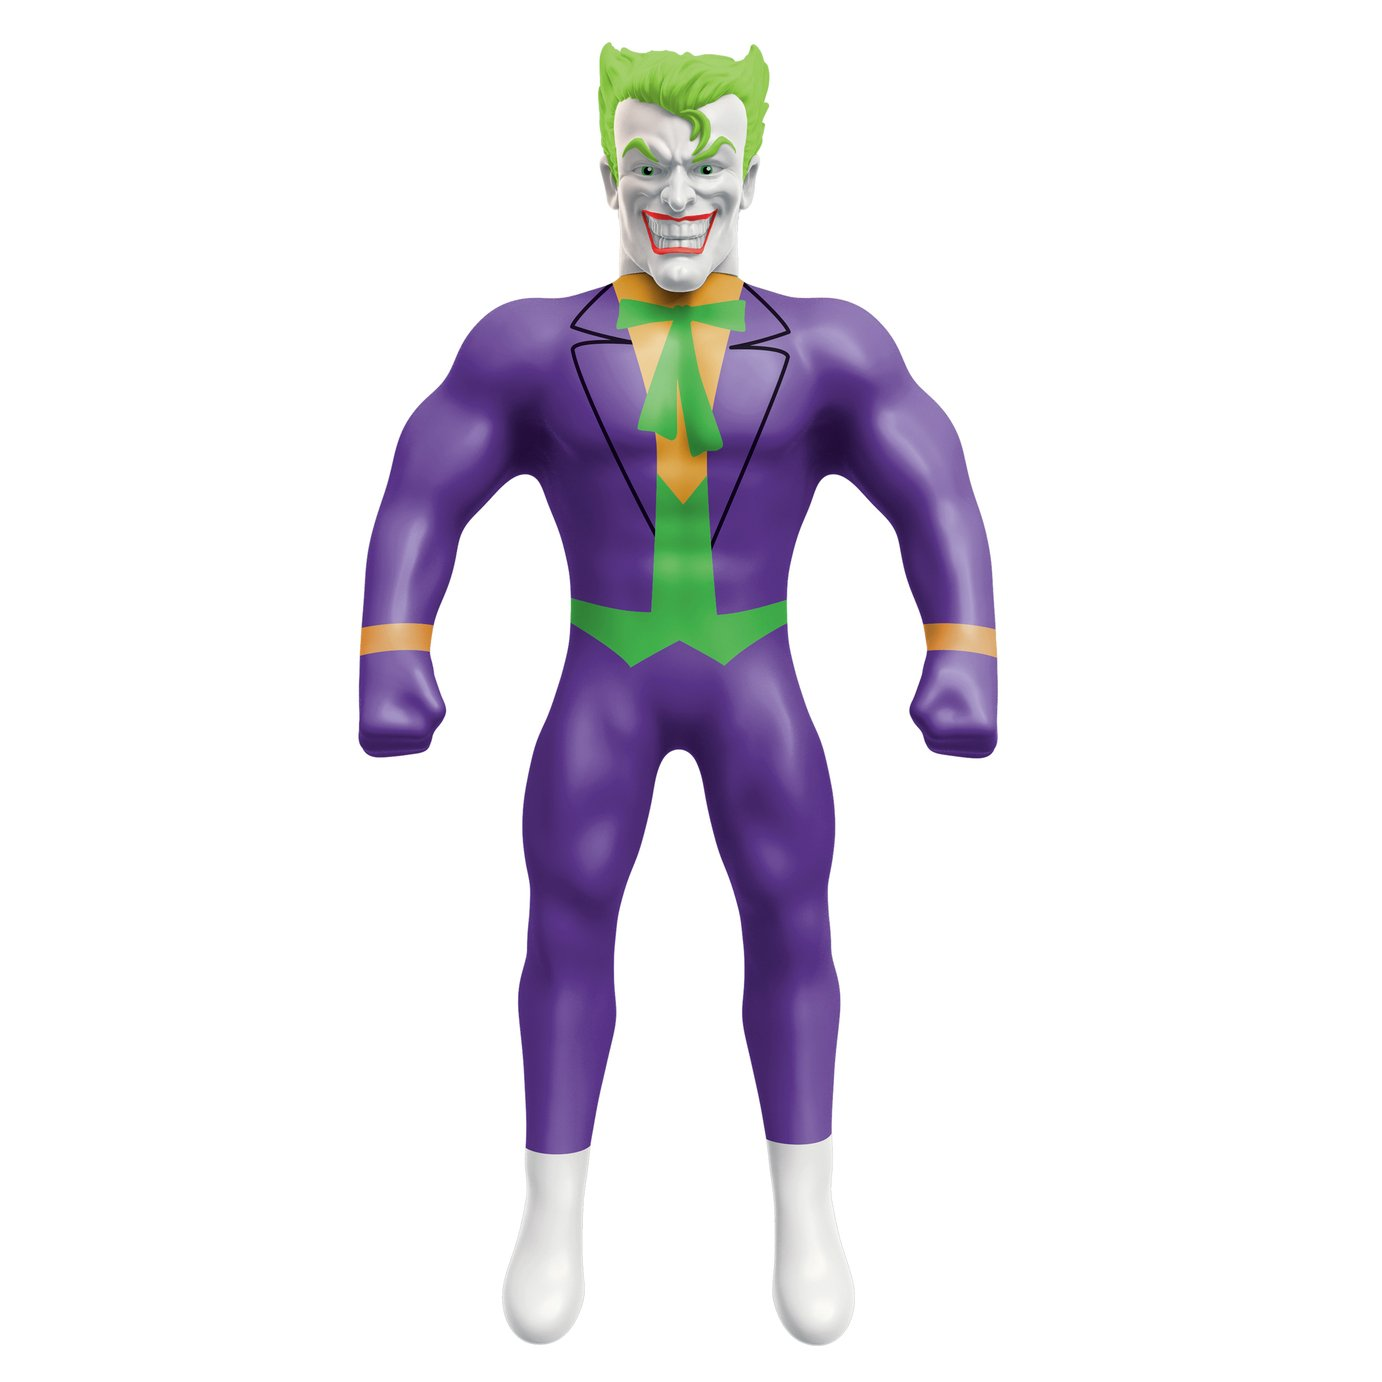 Stretch Joker from stretch